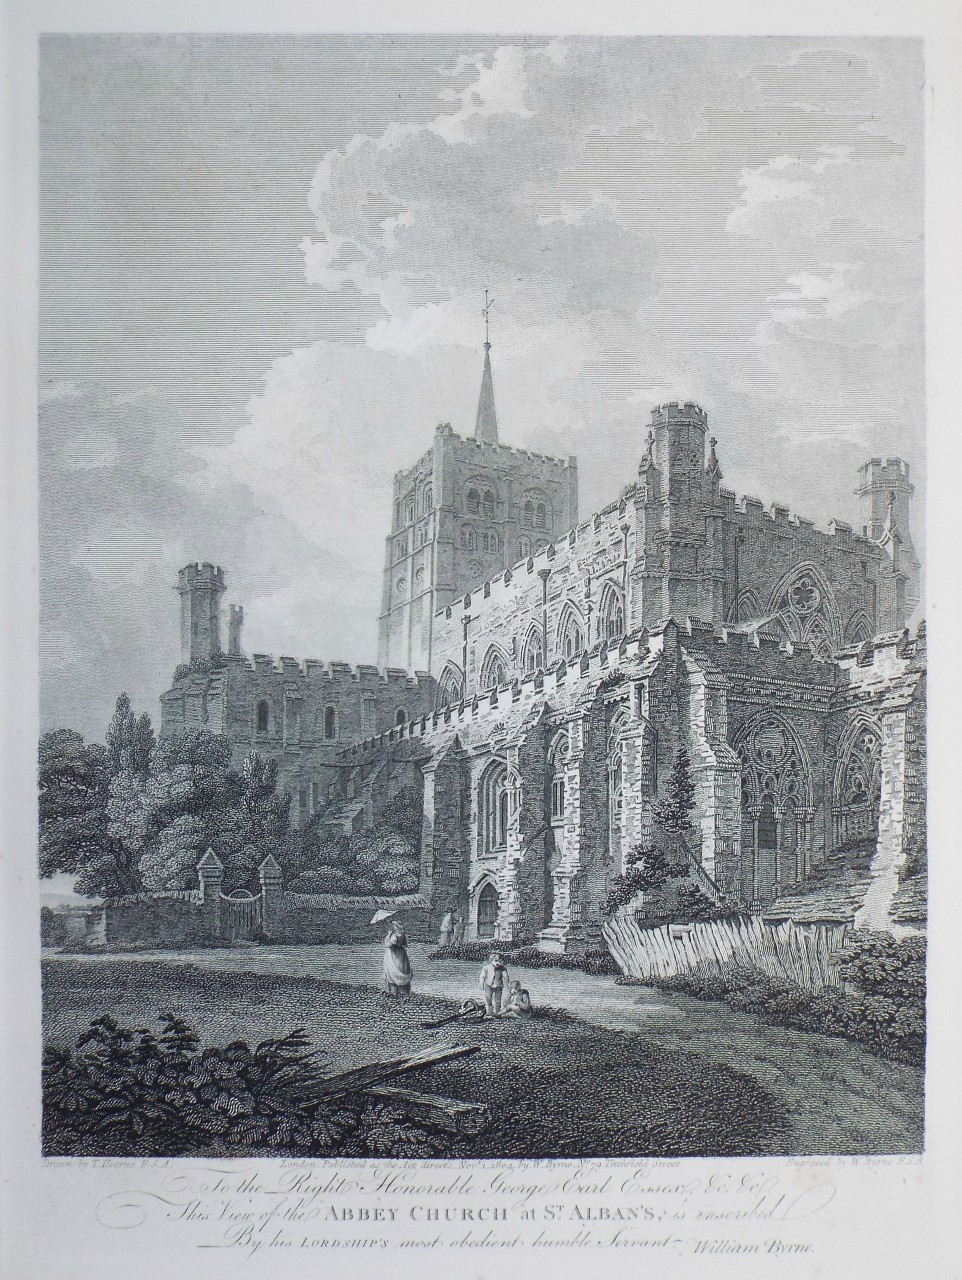 Print - Abbey Church at St. Albans - Byrne